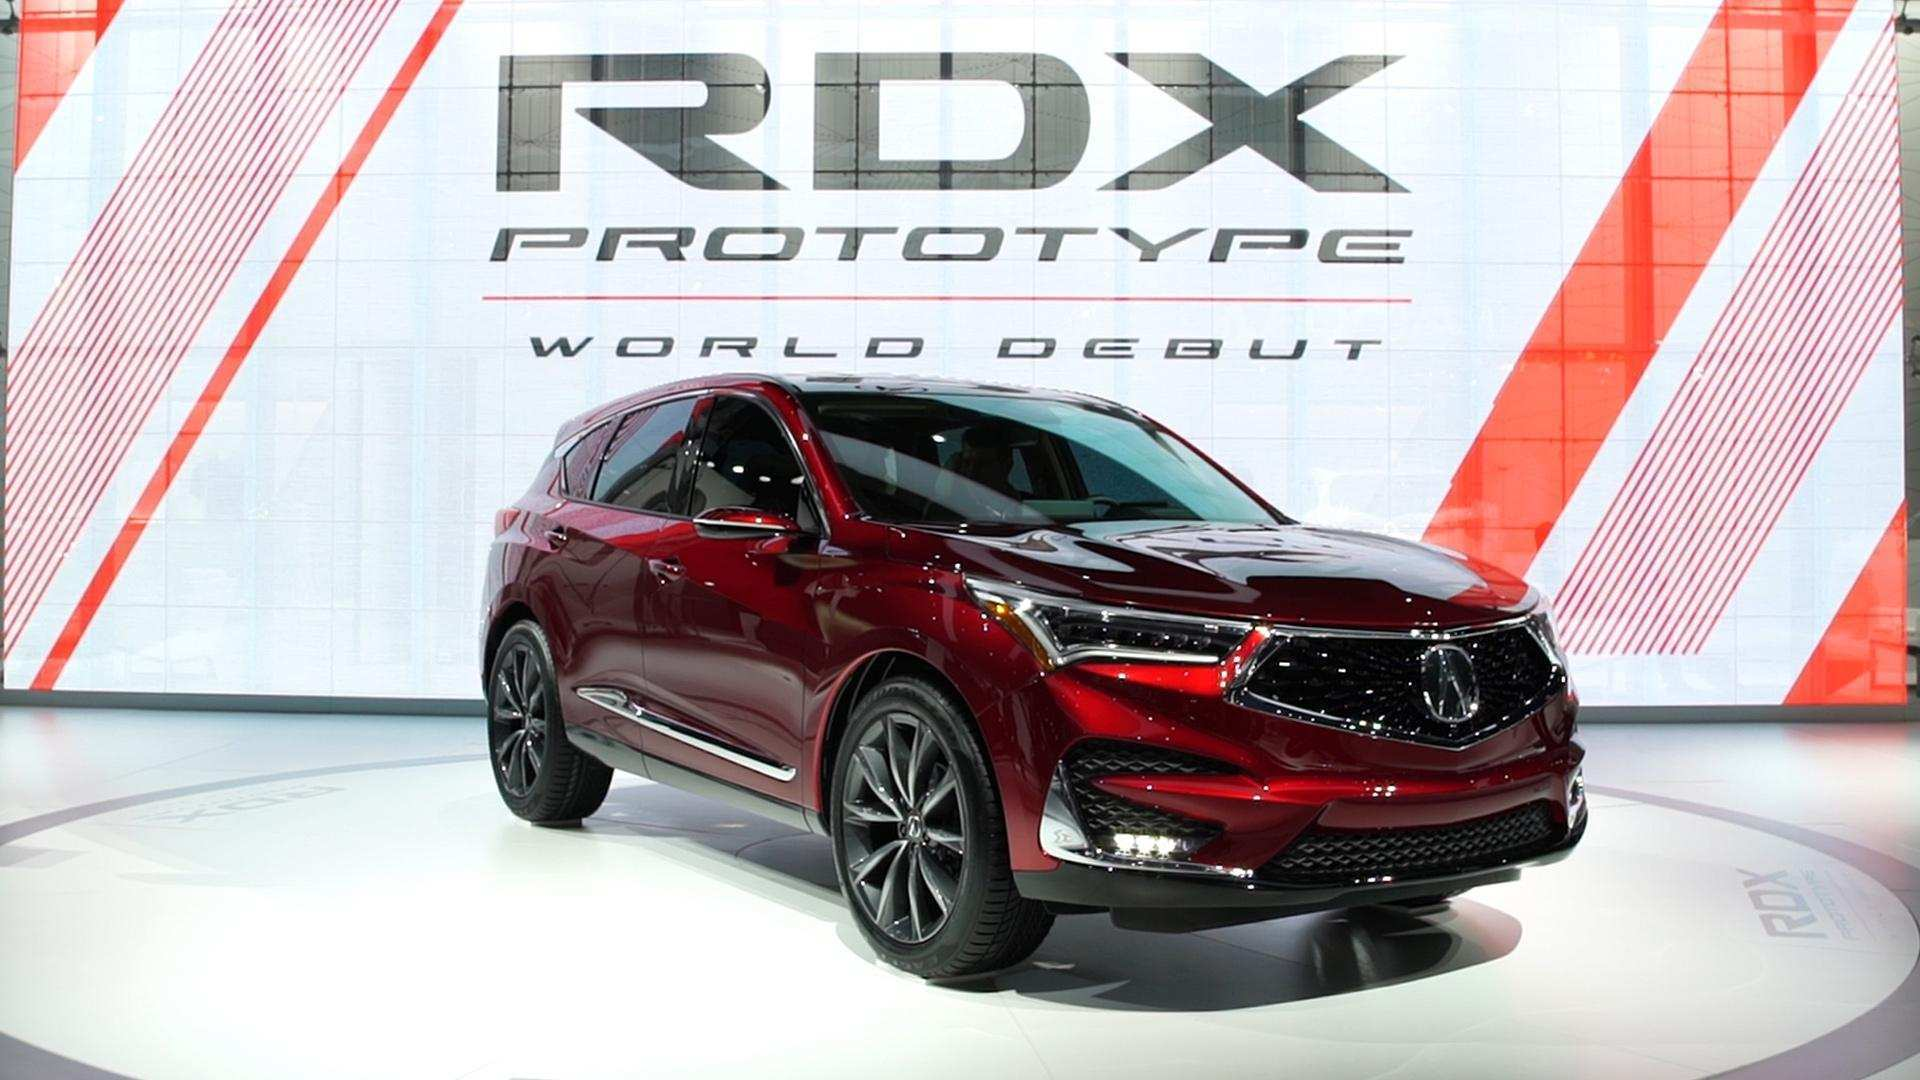 51 Concept of Best Acura Mdx 2019 Release Date Price And Review Specs and Review for Best Acura Mdx 2019 Release Date Price And Review